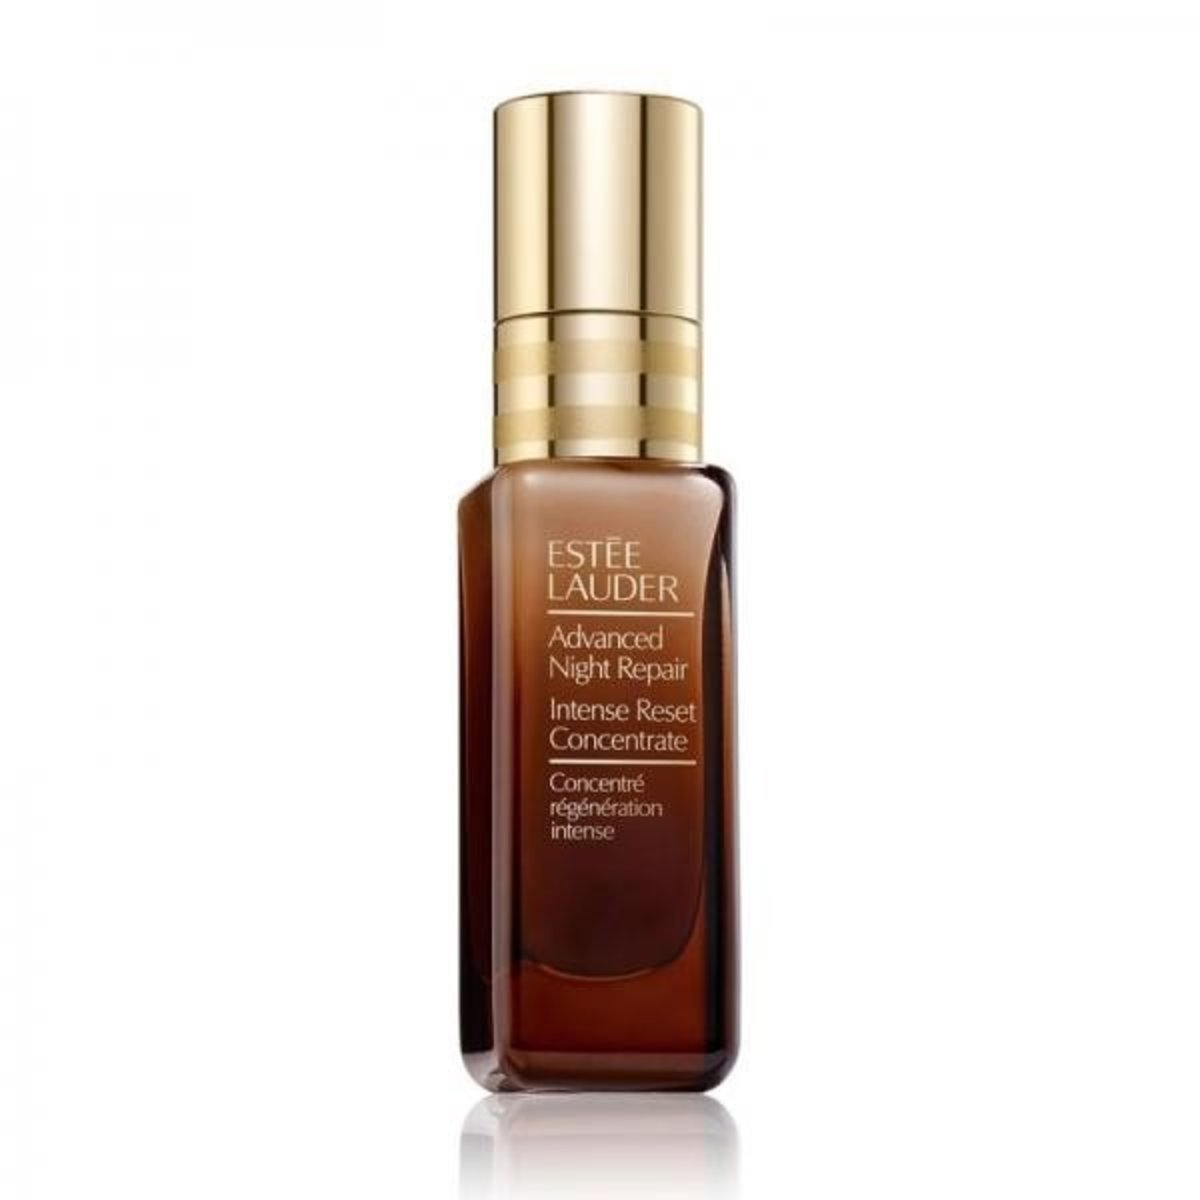 Advanced Night Repair Intense Reset Concentrate 20g (Parallel Import)